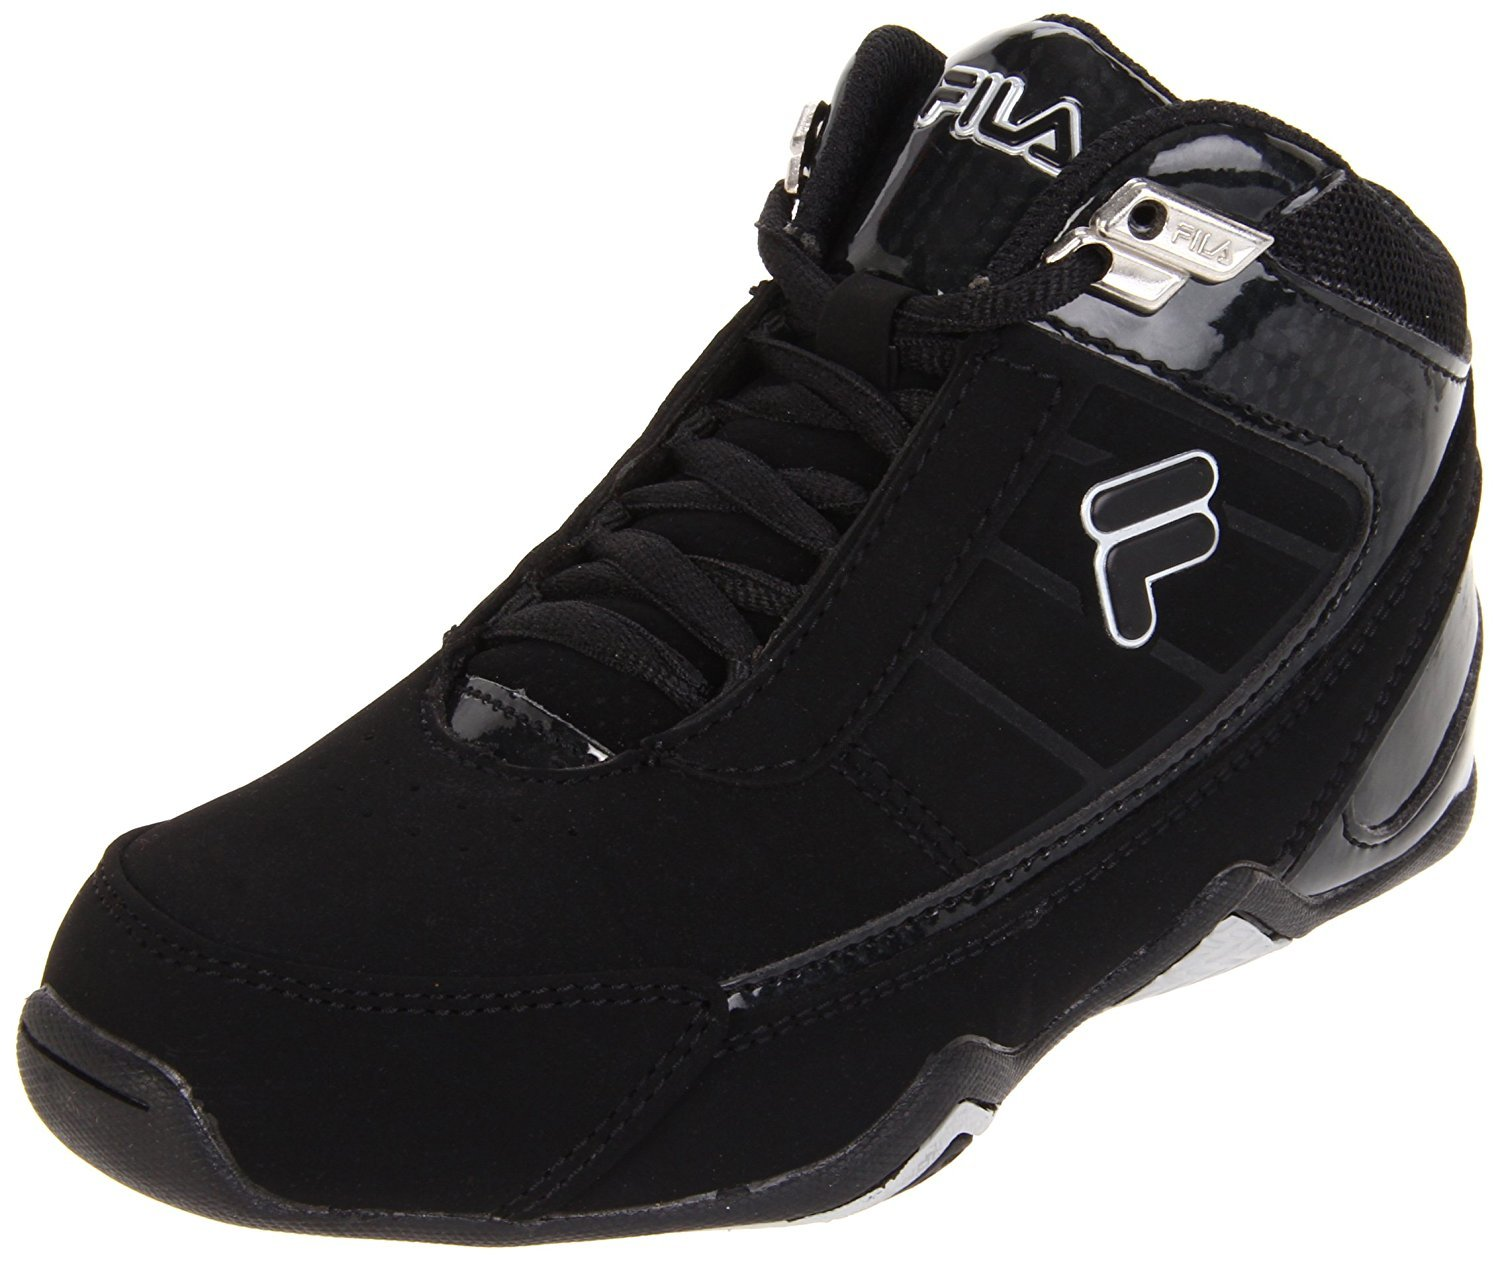 Fila CHANGE THE GAME Kids Black Metallic Silver High Top Athletic Basketball Sneakers Shoes by